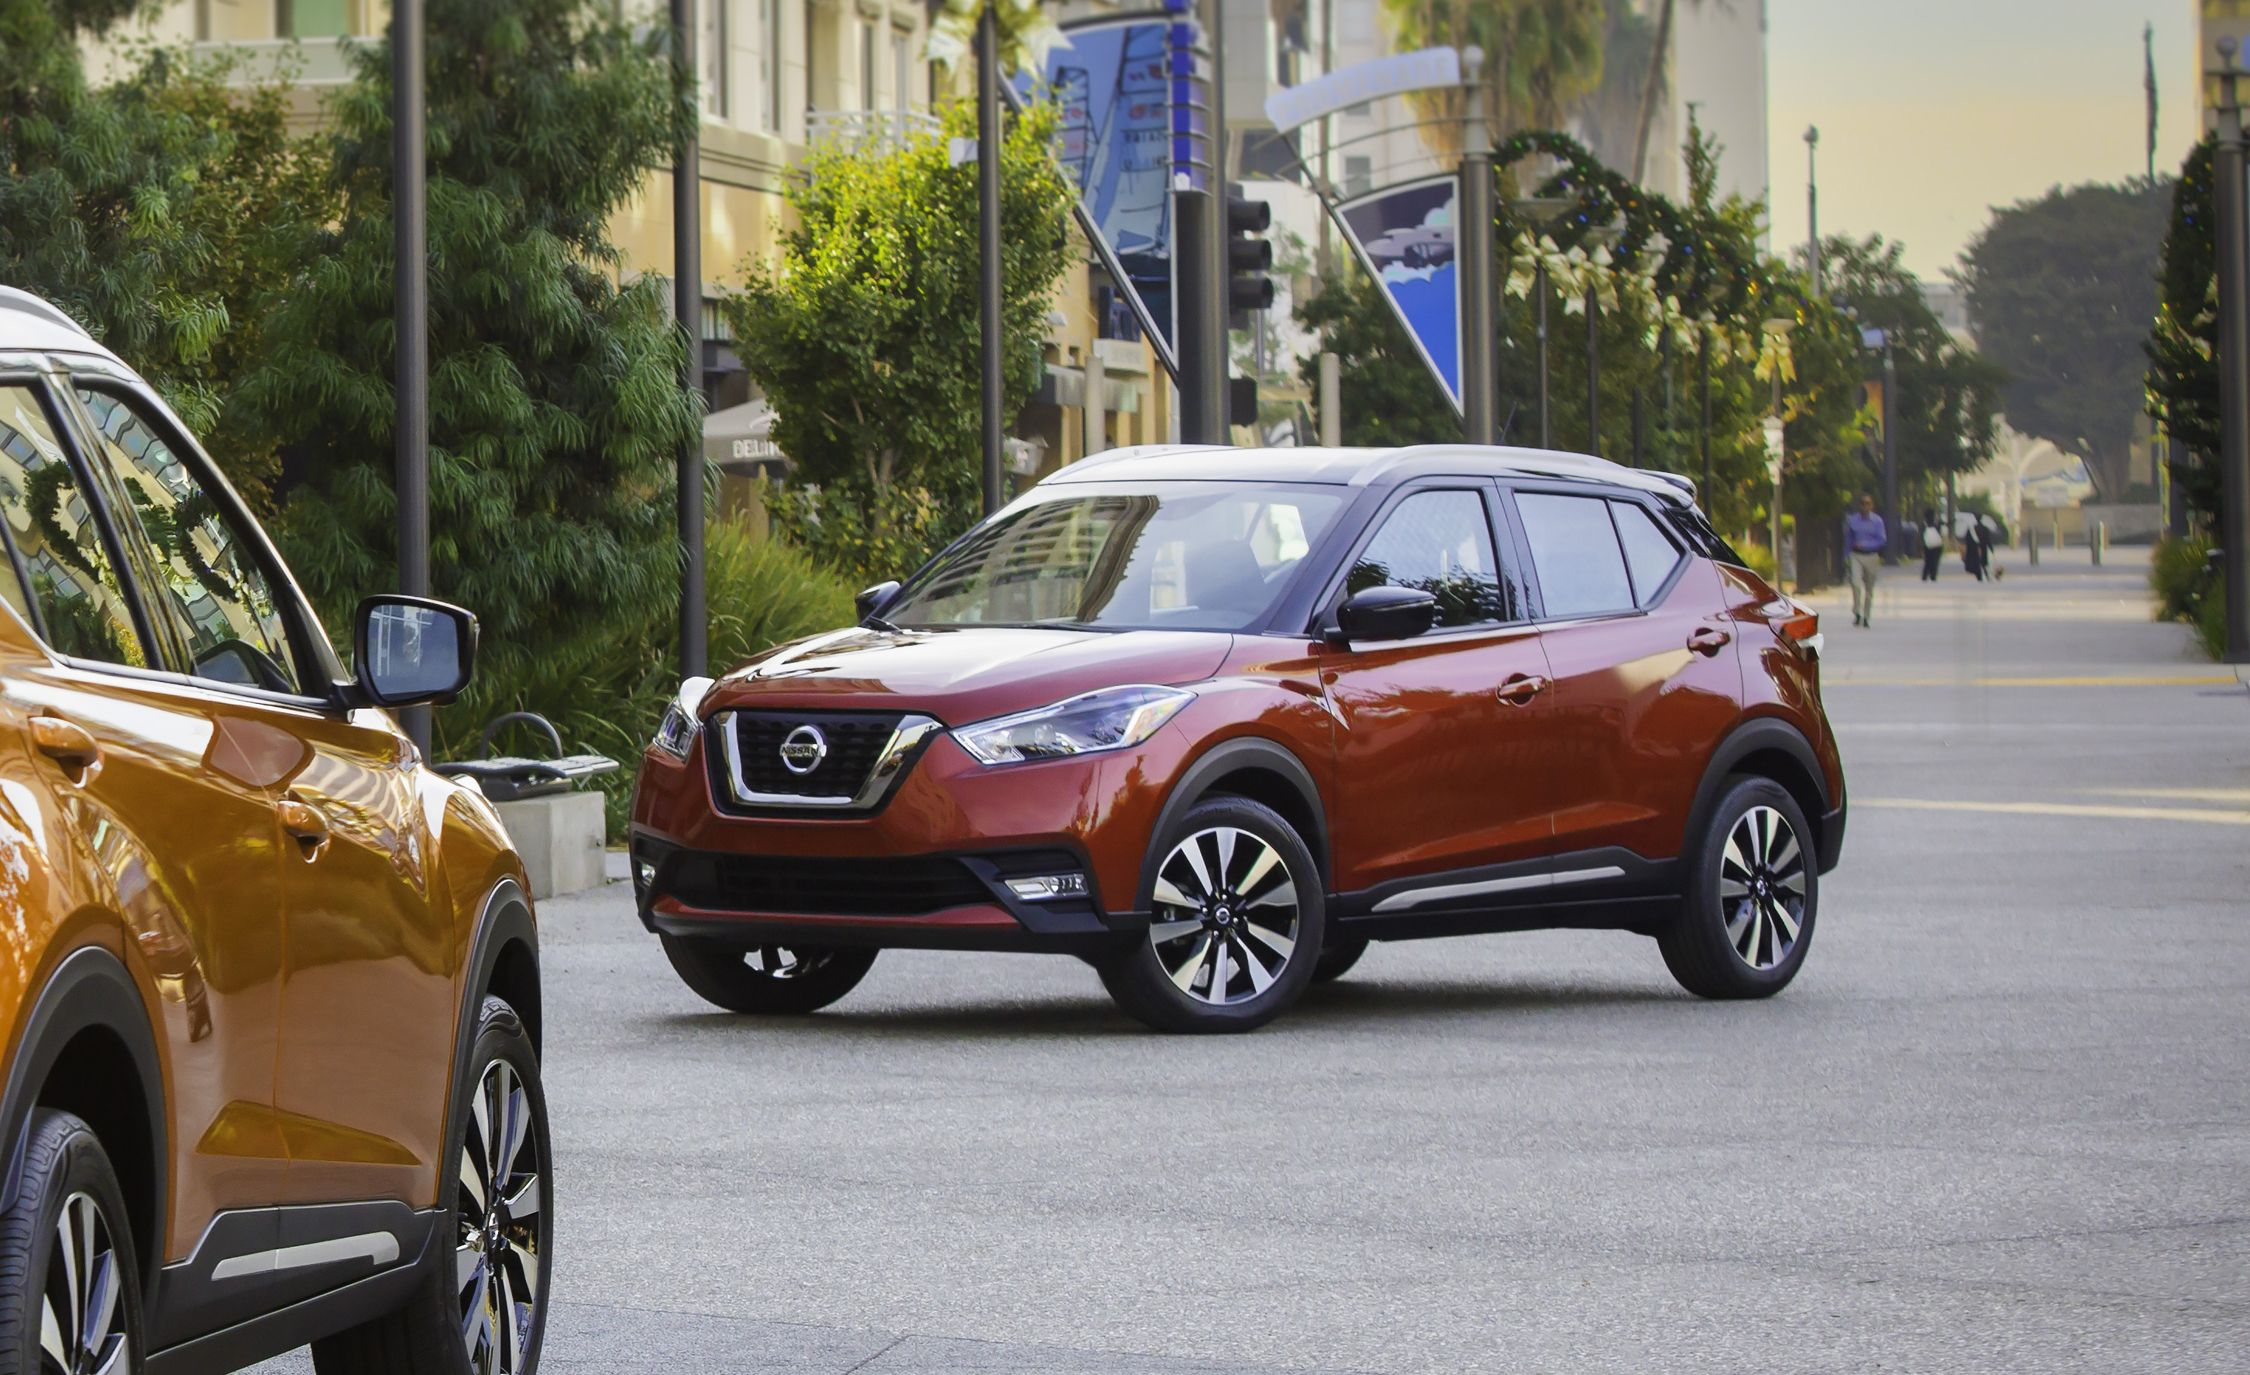 10 Reasons to Consider the Nissan Kicks, an Incredible Crossover Value